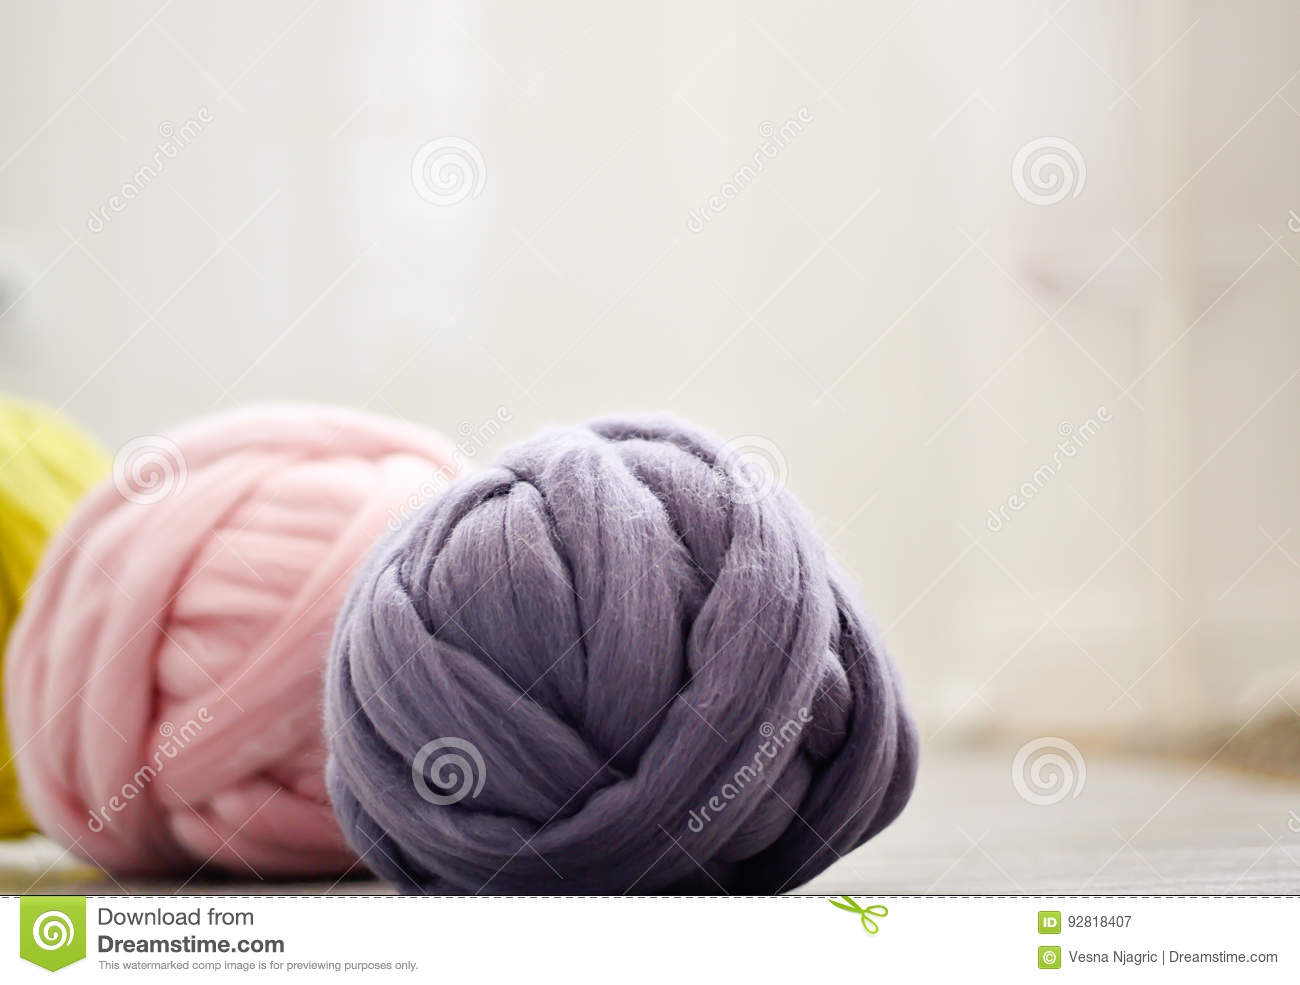 Yarns of merino wool